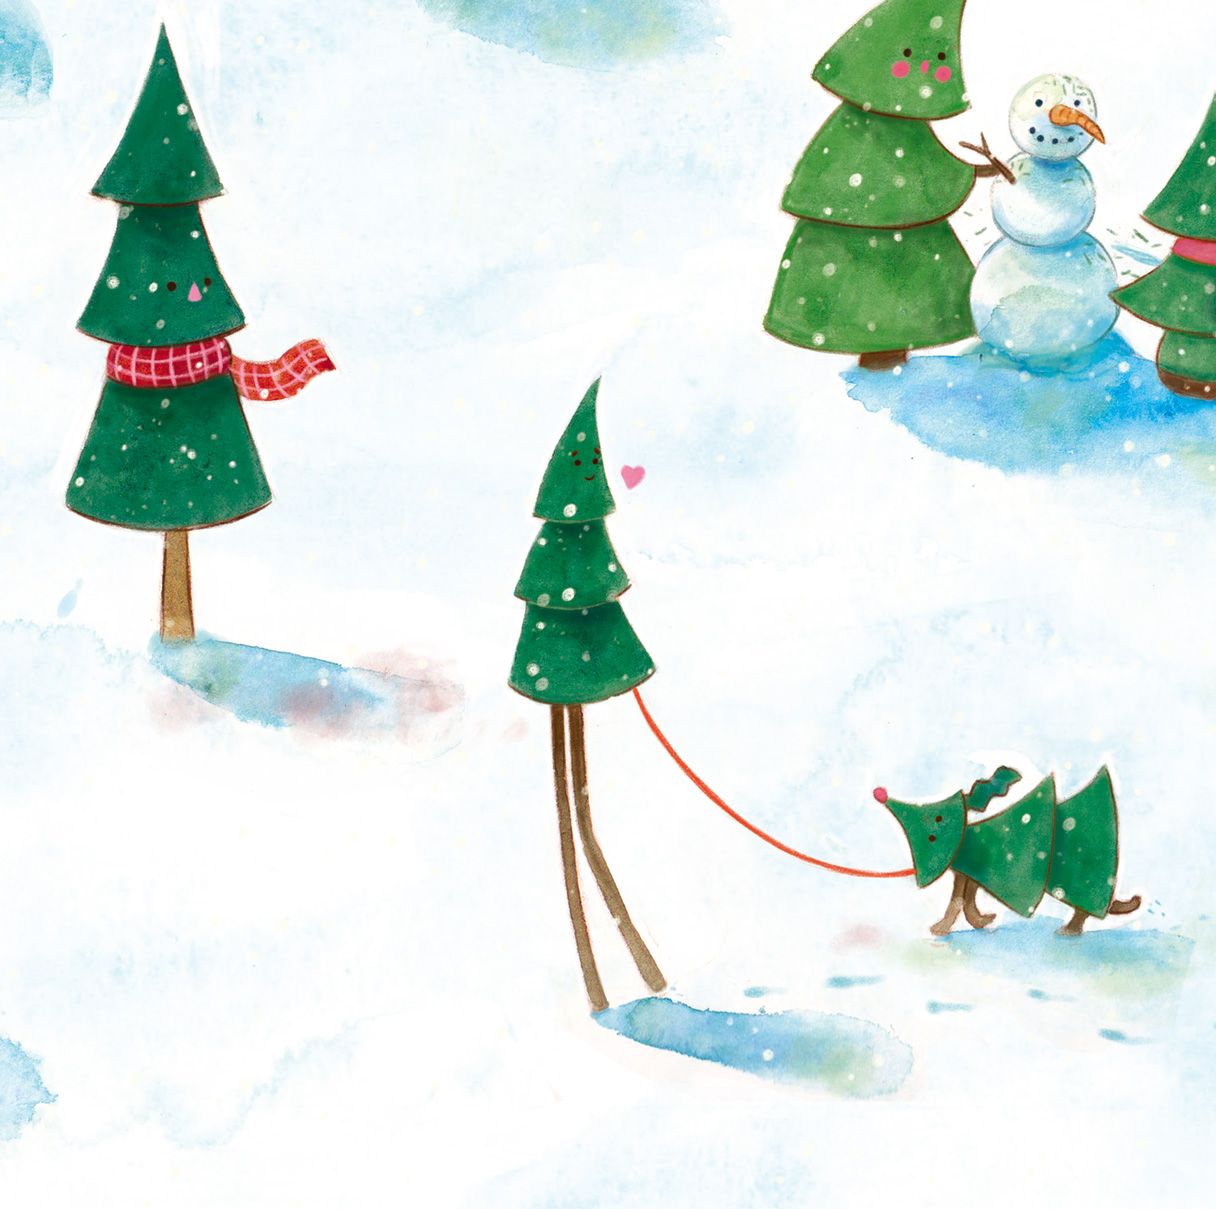 Christmascarddesign_illustration_elsdecaluwe